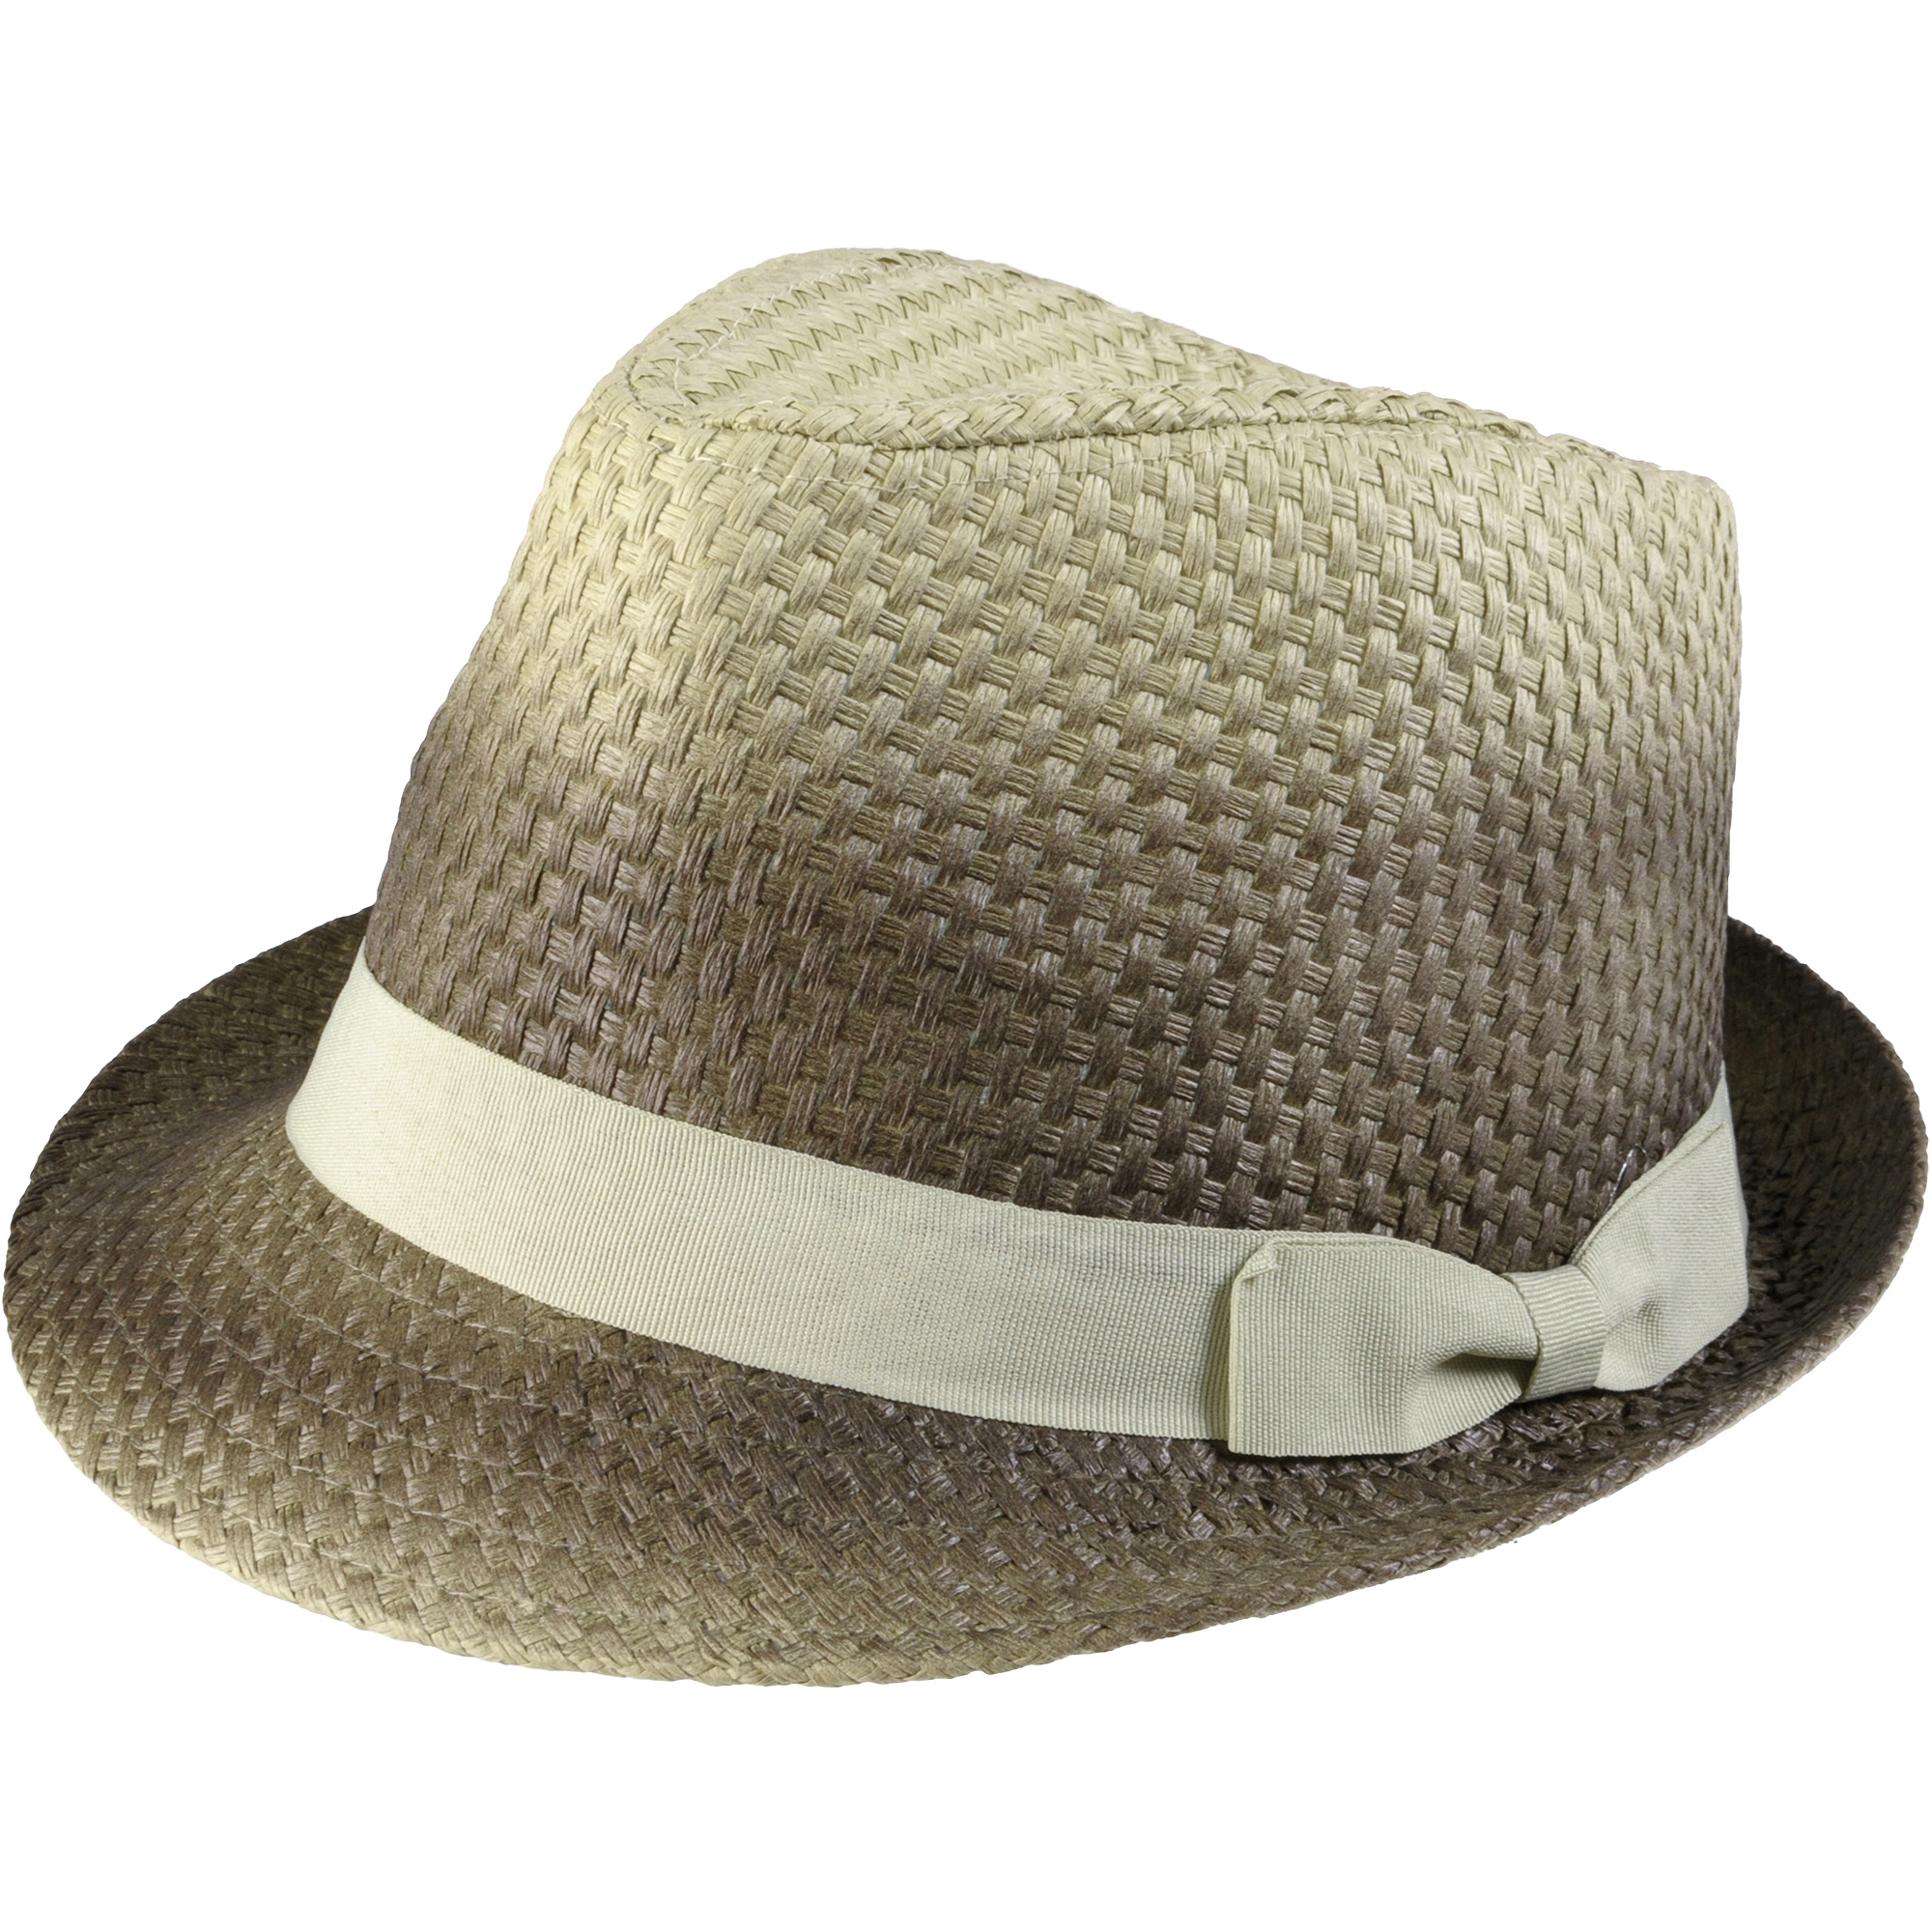 Brinley Co Womens Basketweave Bow Accent